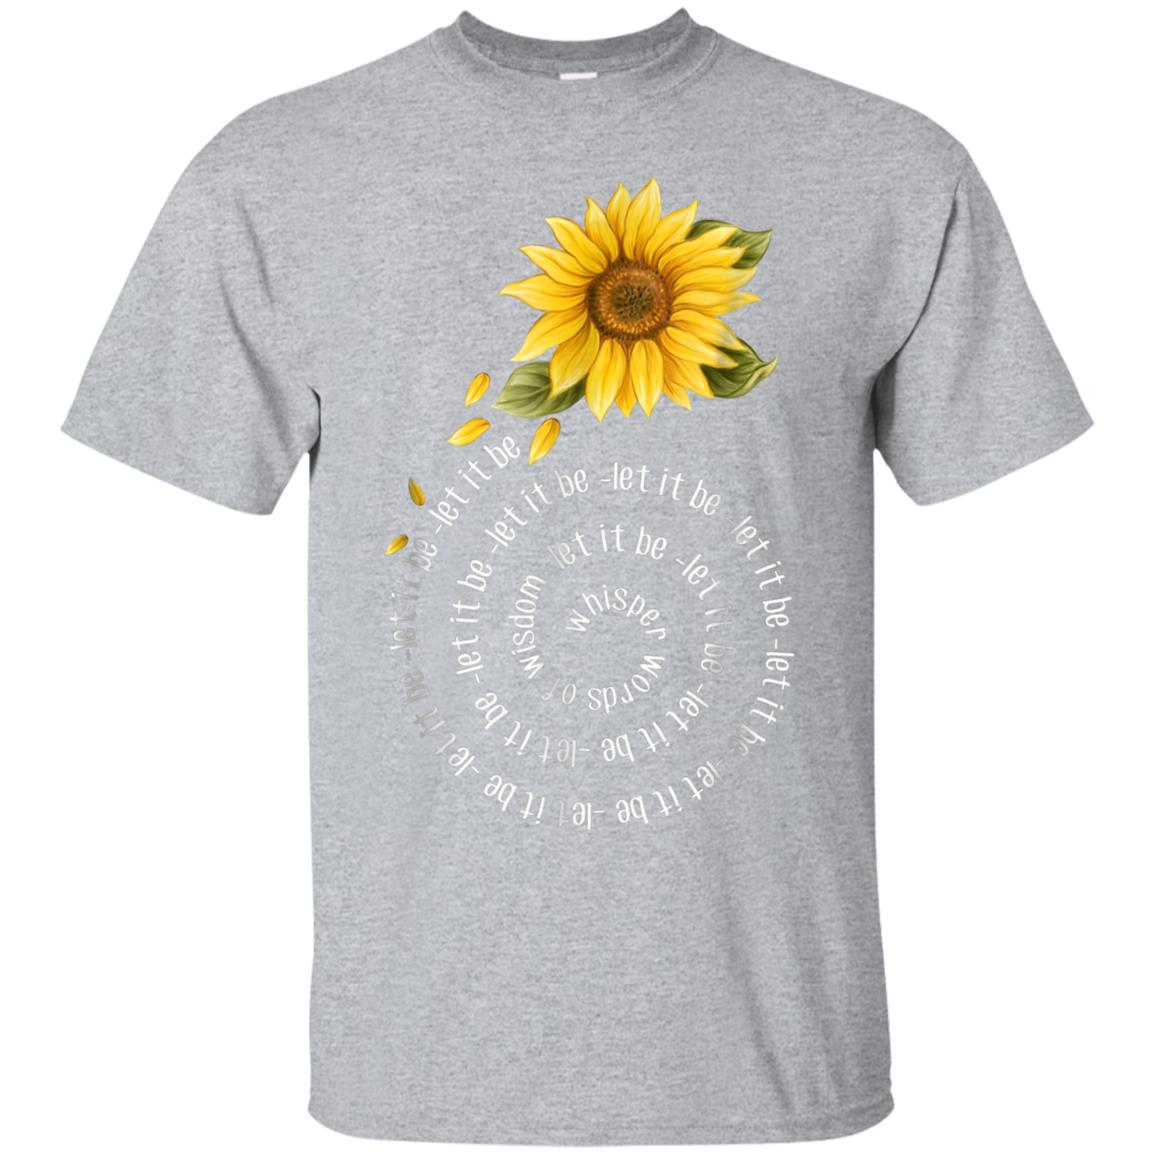 Whisper Words Of Wisdom Let It Be Sunflower T-Shirt 99promocode